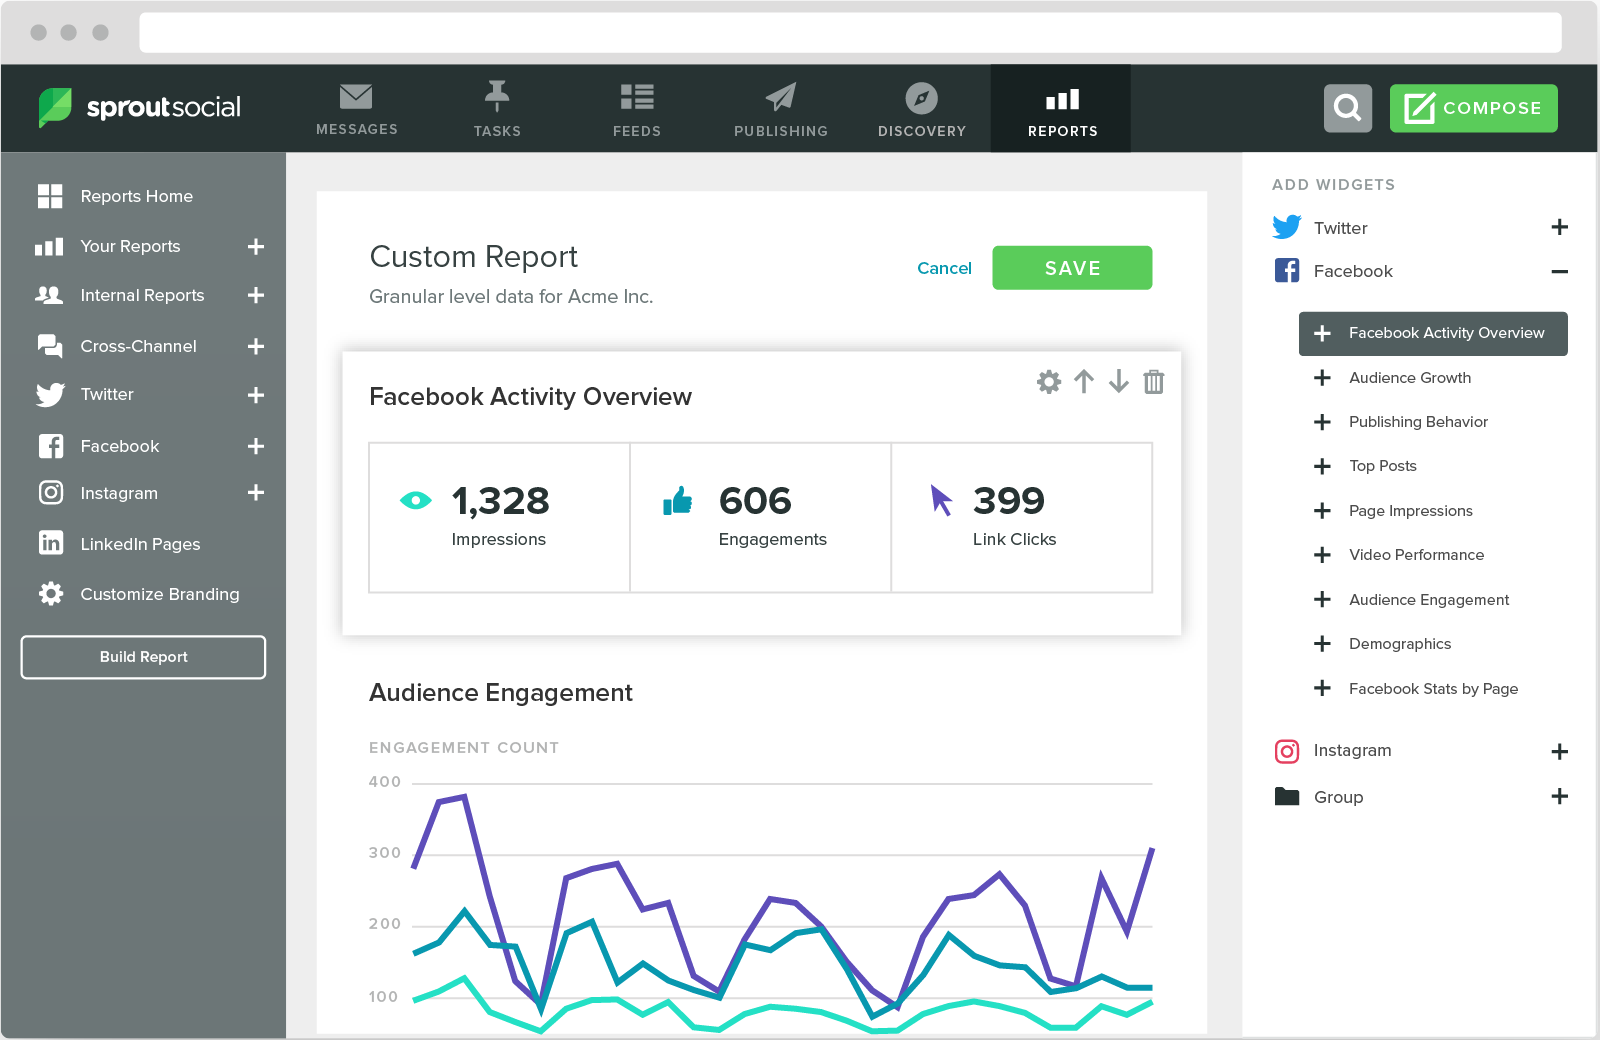 Link clicks in Develop can clue you in on the top-performing content